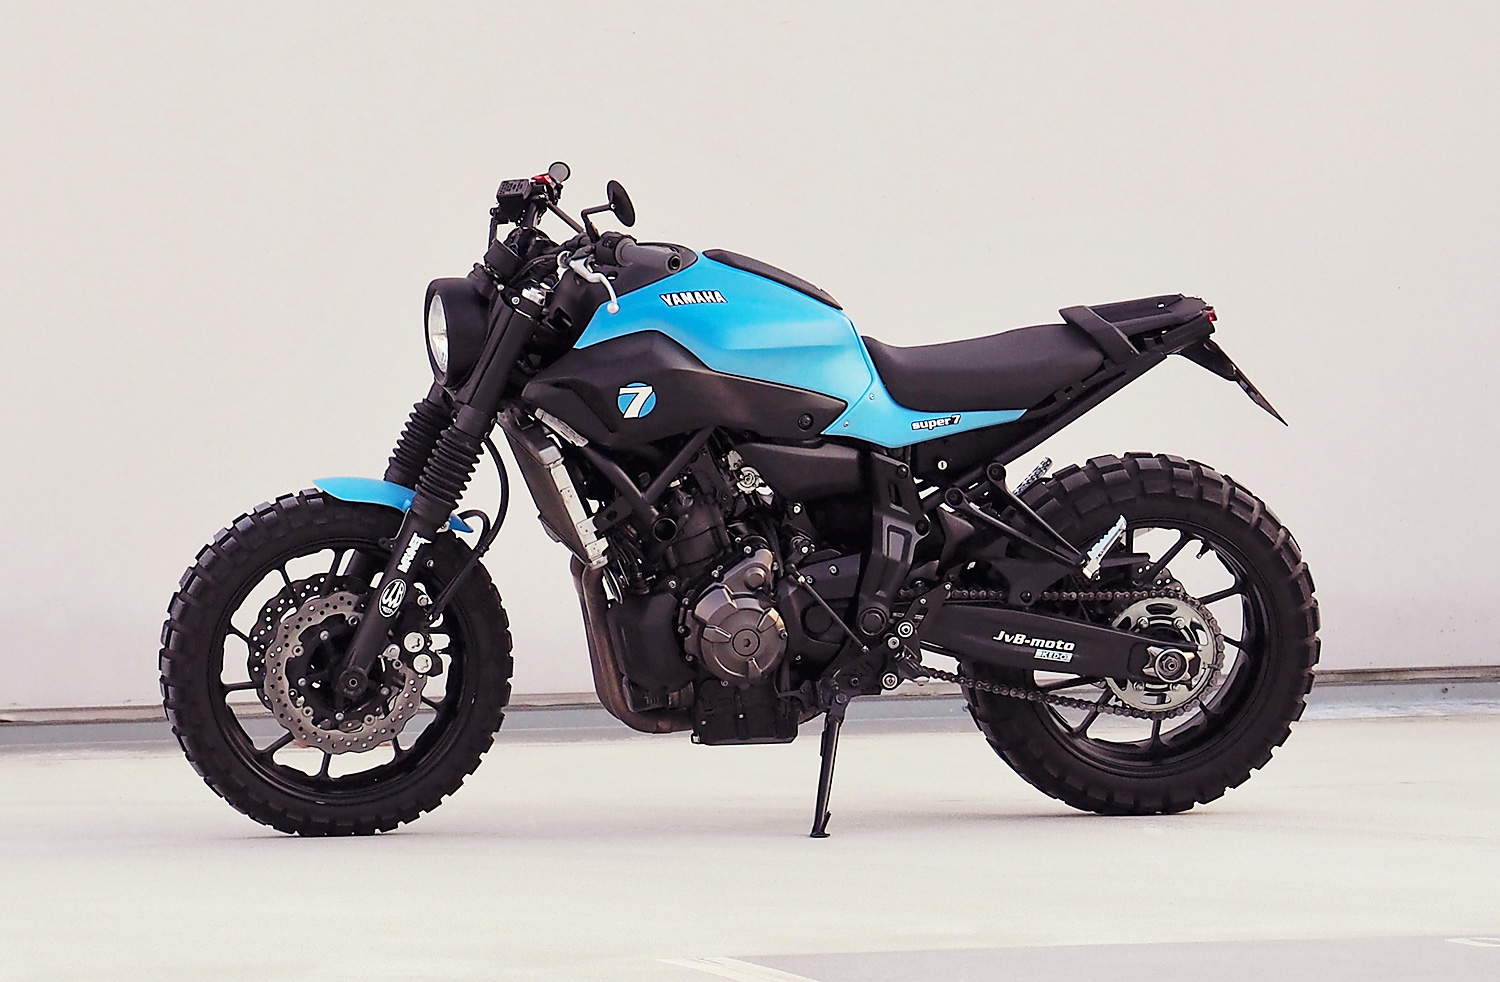 racing caf yamaha mt super 7 by jvb moto